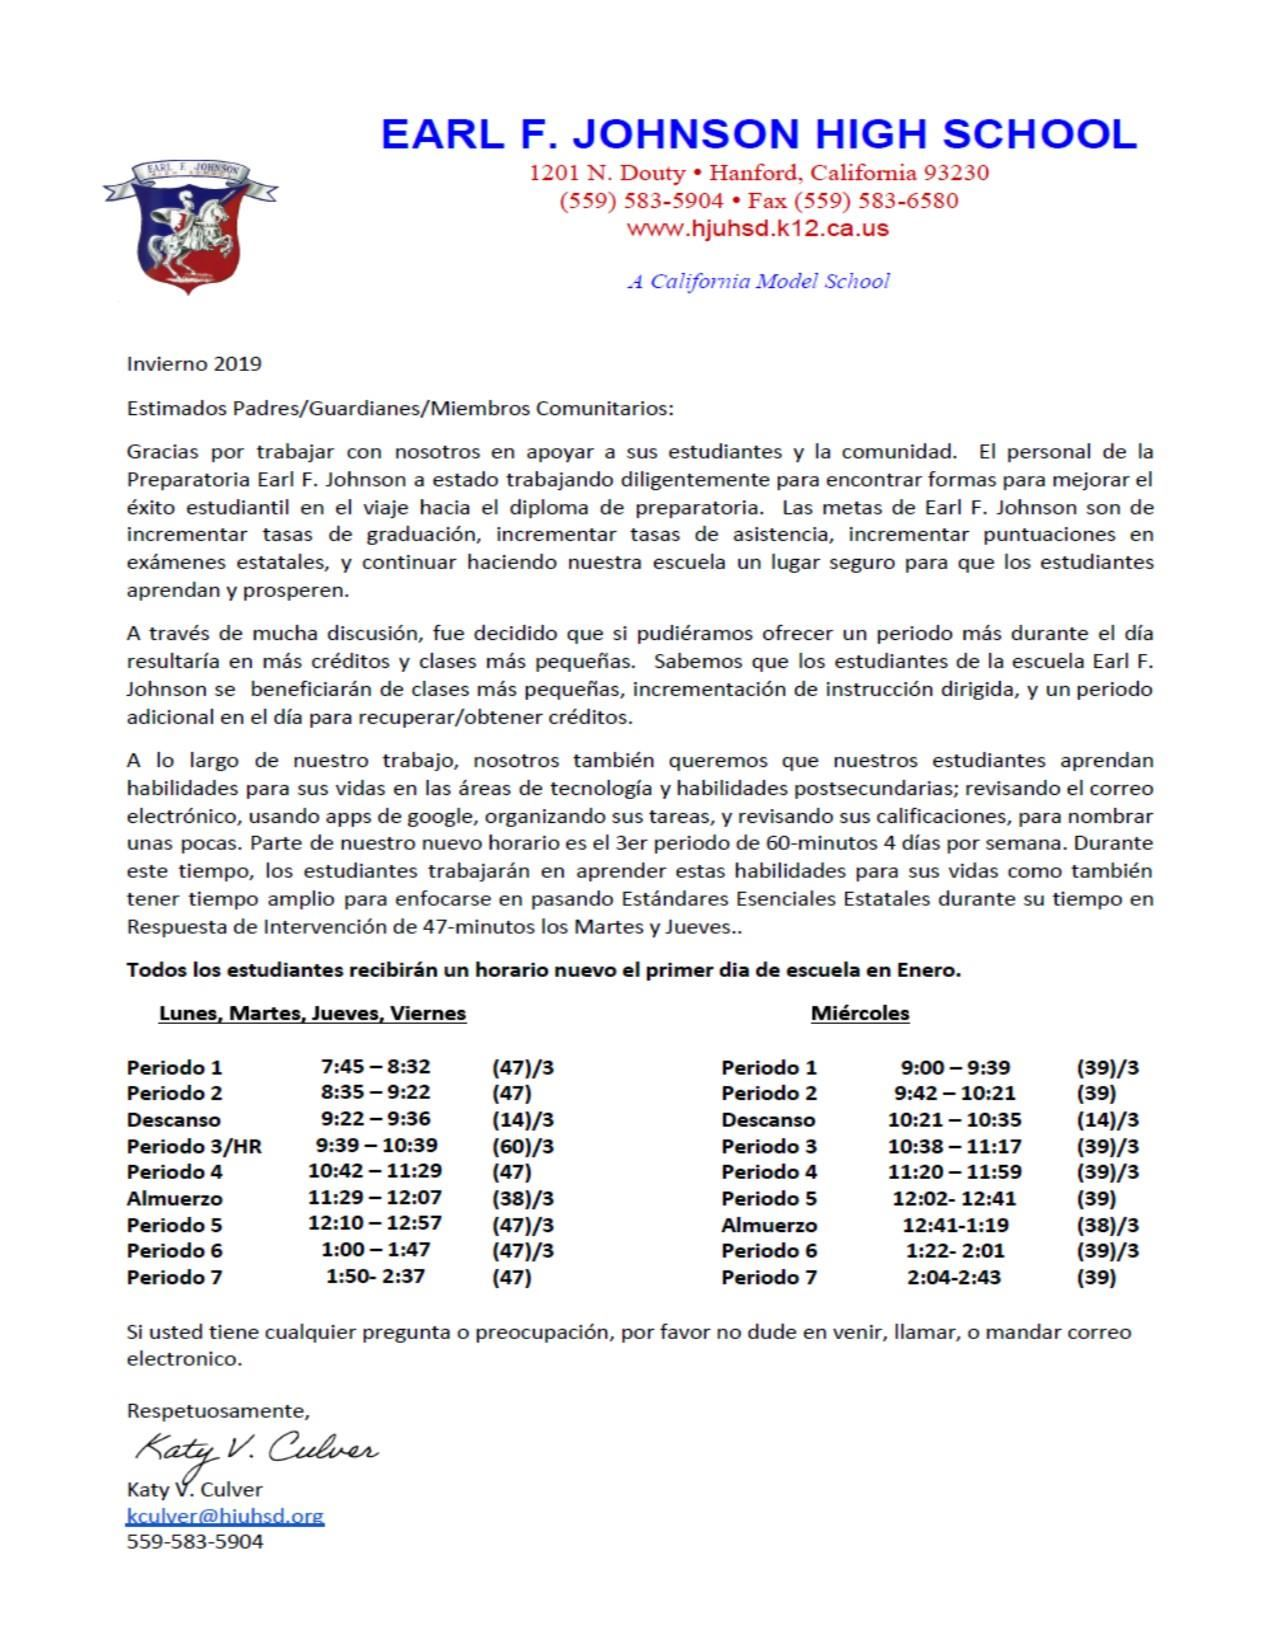 Schedule Change Letter in Spanish